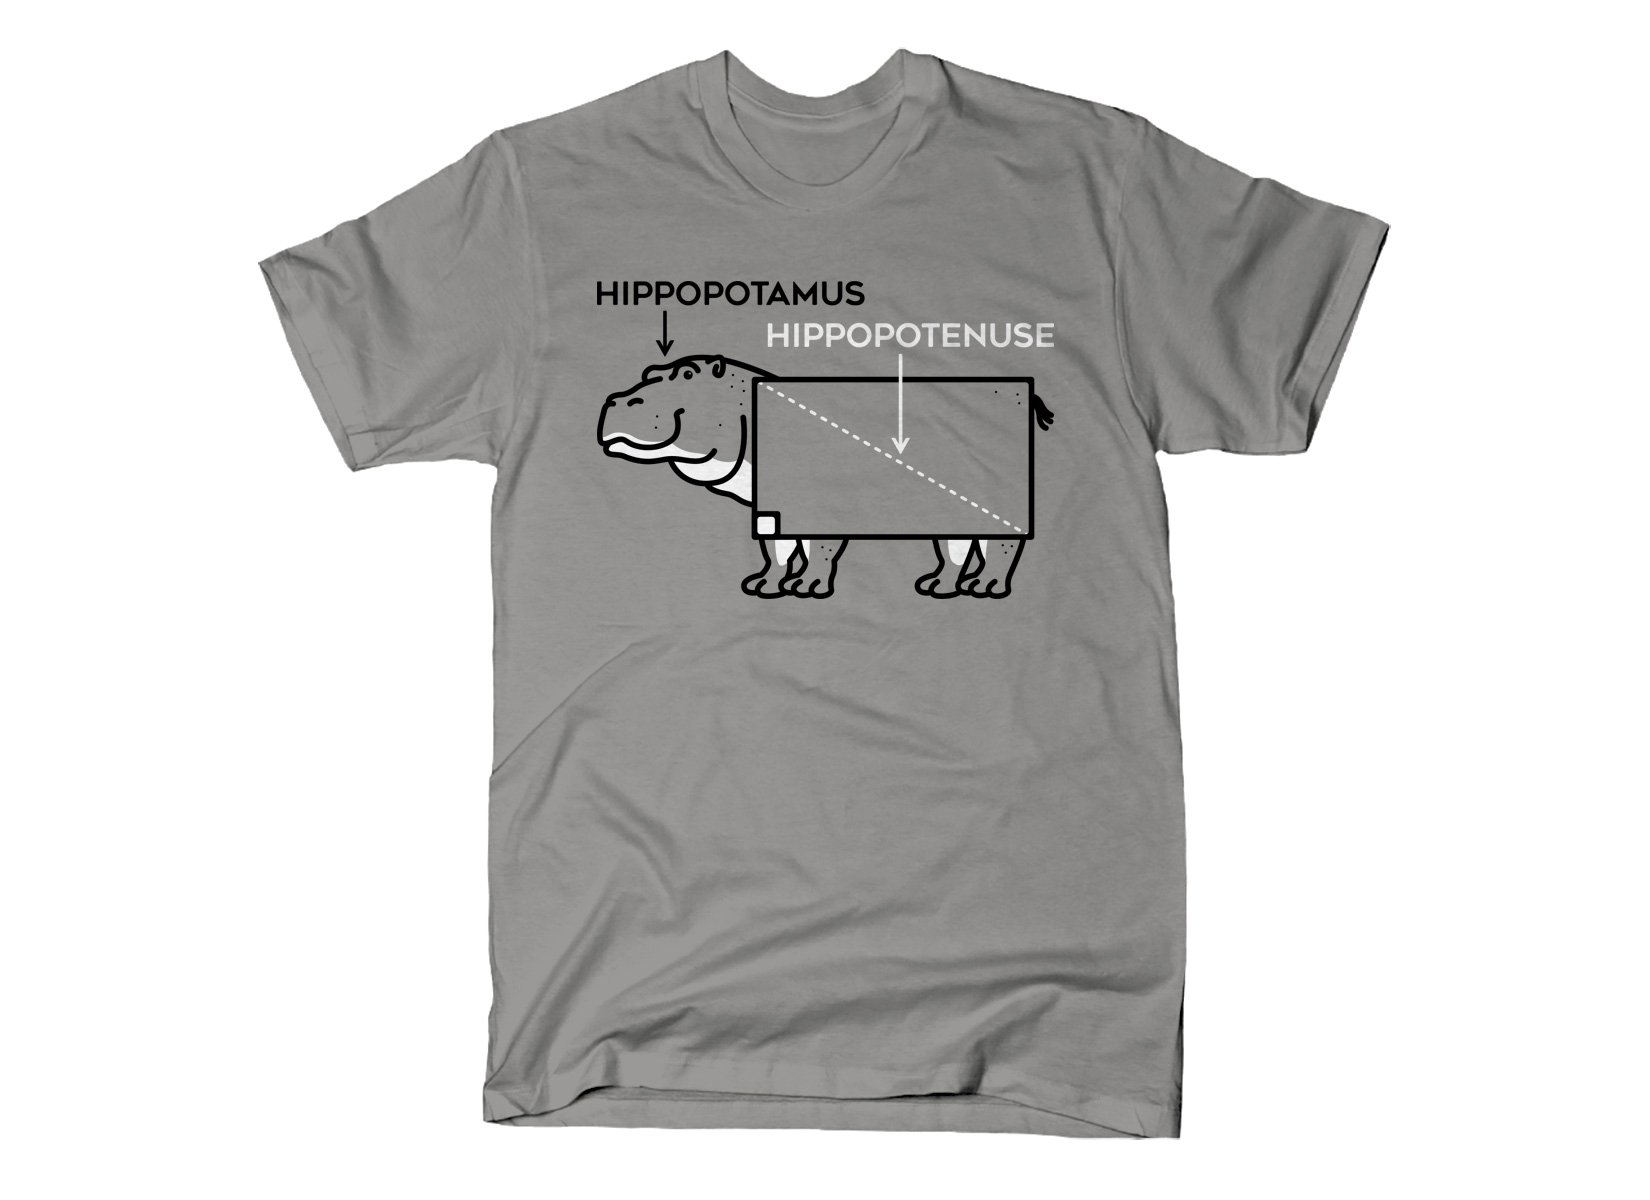 Hippopotenuse on Mens T-Shirt